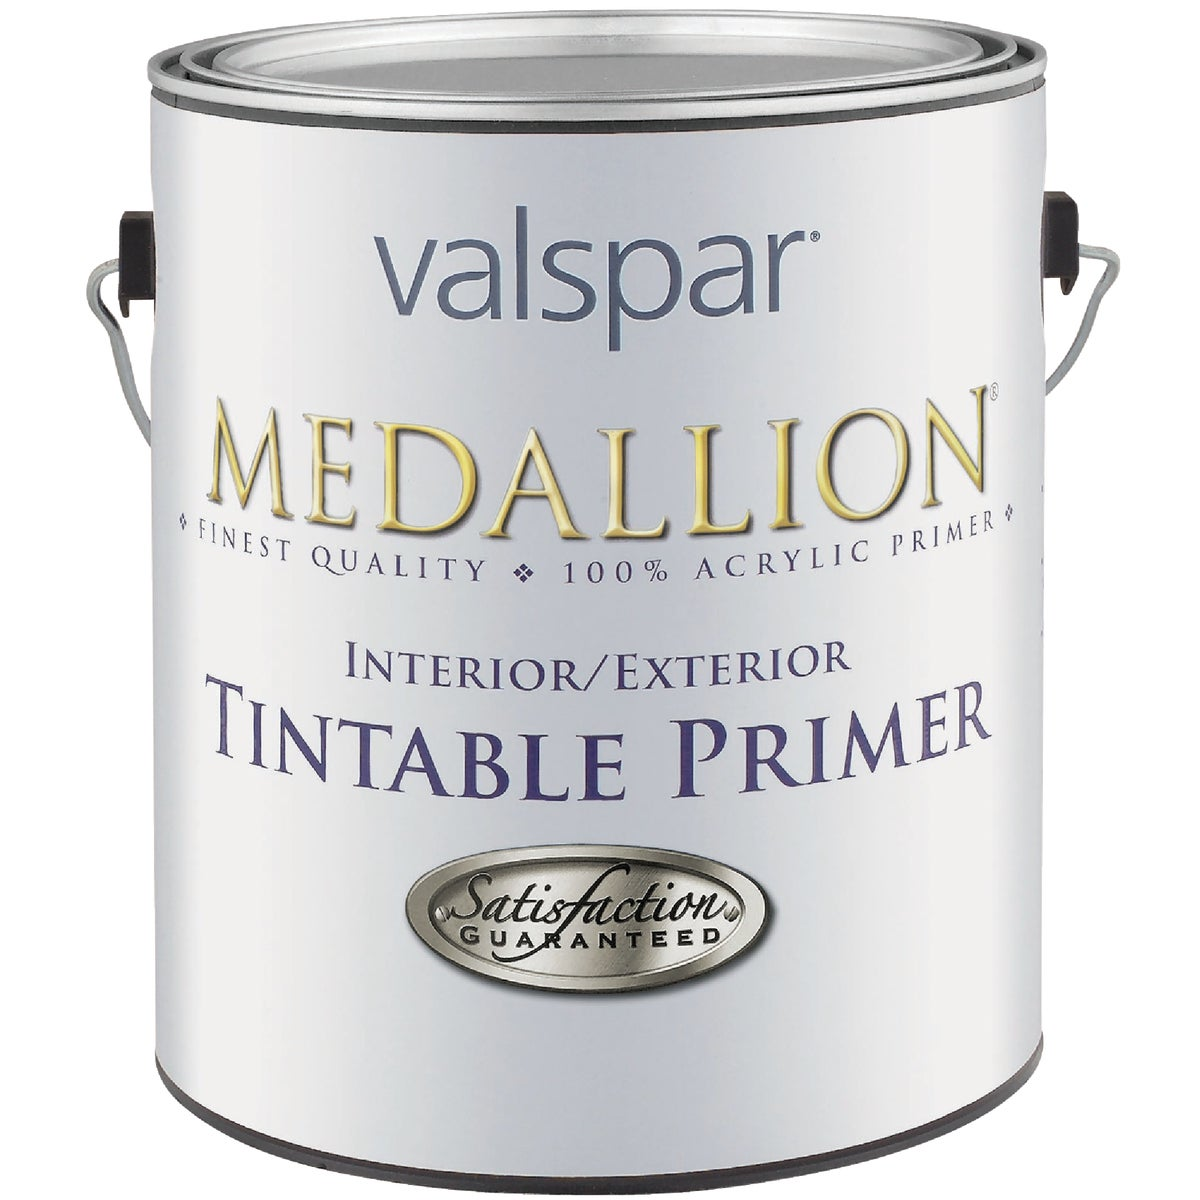 INT/EXT TINTABLE PRIMER - 027.0000192.007 by Valspar Corp